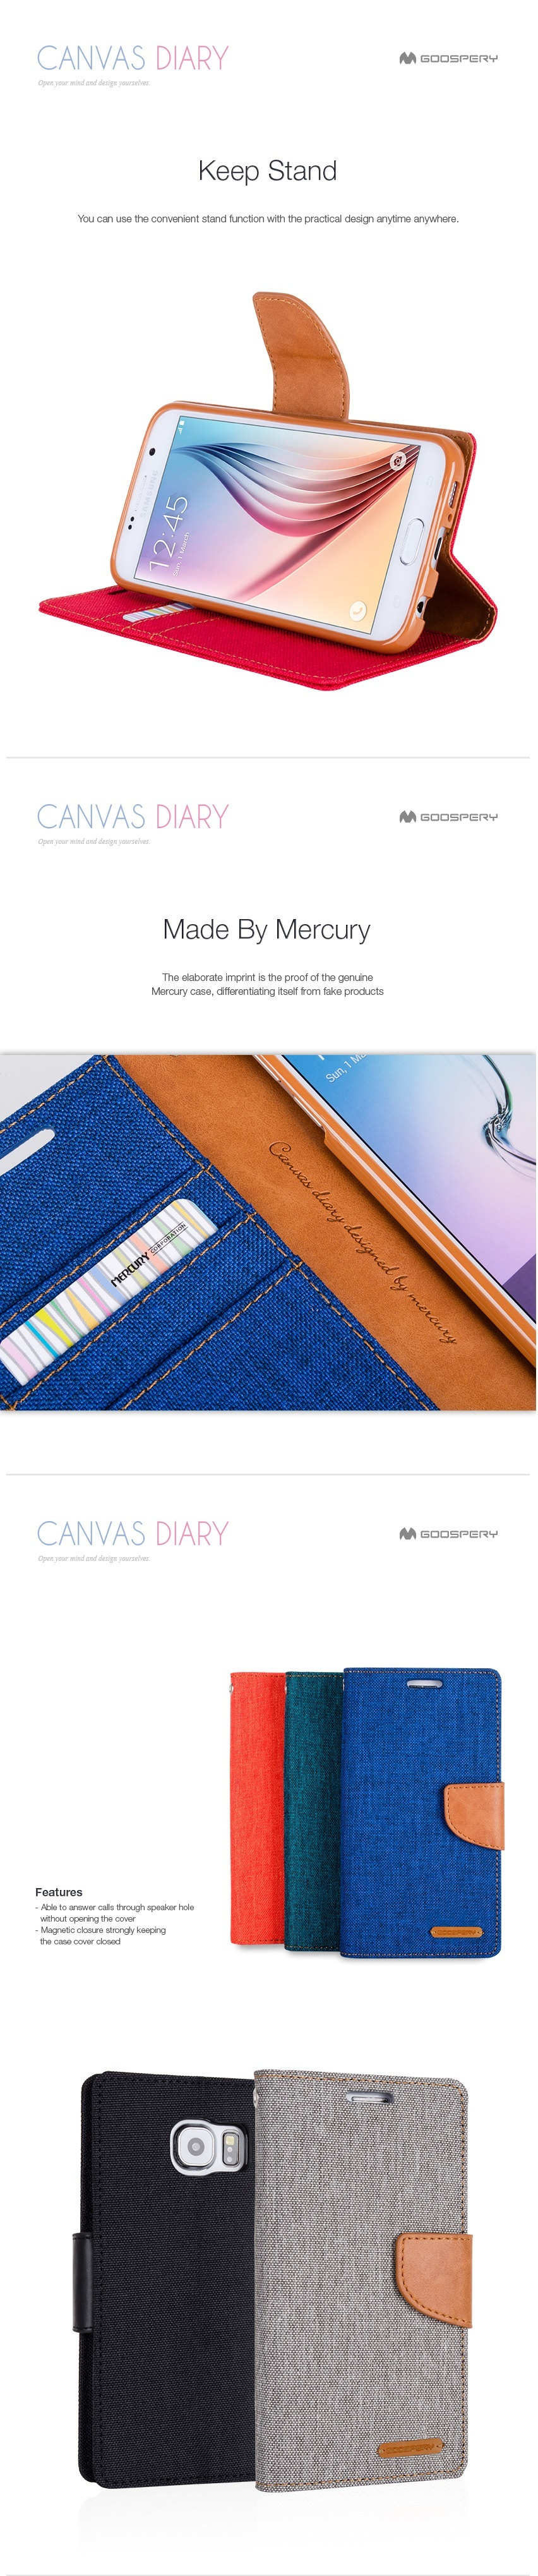 Buy Goospery Deals For Only S199 Instead Of S0 Samsung Galaxy J3 2016 Canvas Diary Case Blue Mercury Color Pearl Jelly With Various Colors And Strong Protection Scratch Is The Best